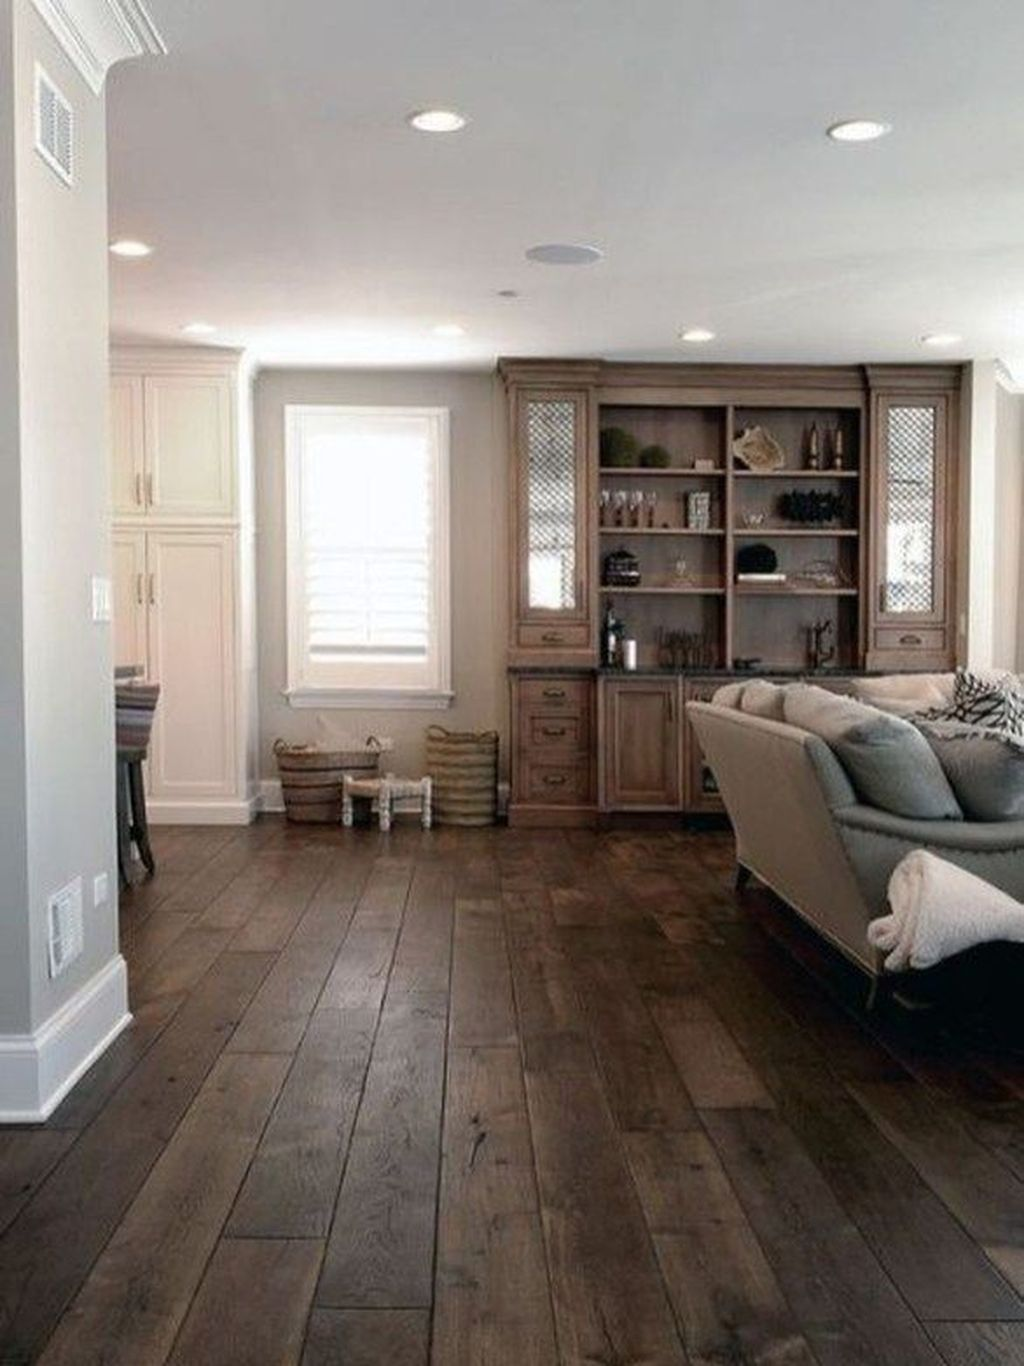 14 Inexpensive Rustic Bedroom Blue Ideas With Images Farm House Living Room Hardwood Bedroom Floors House Flooring